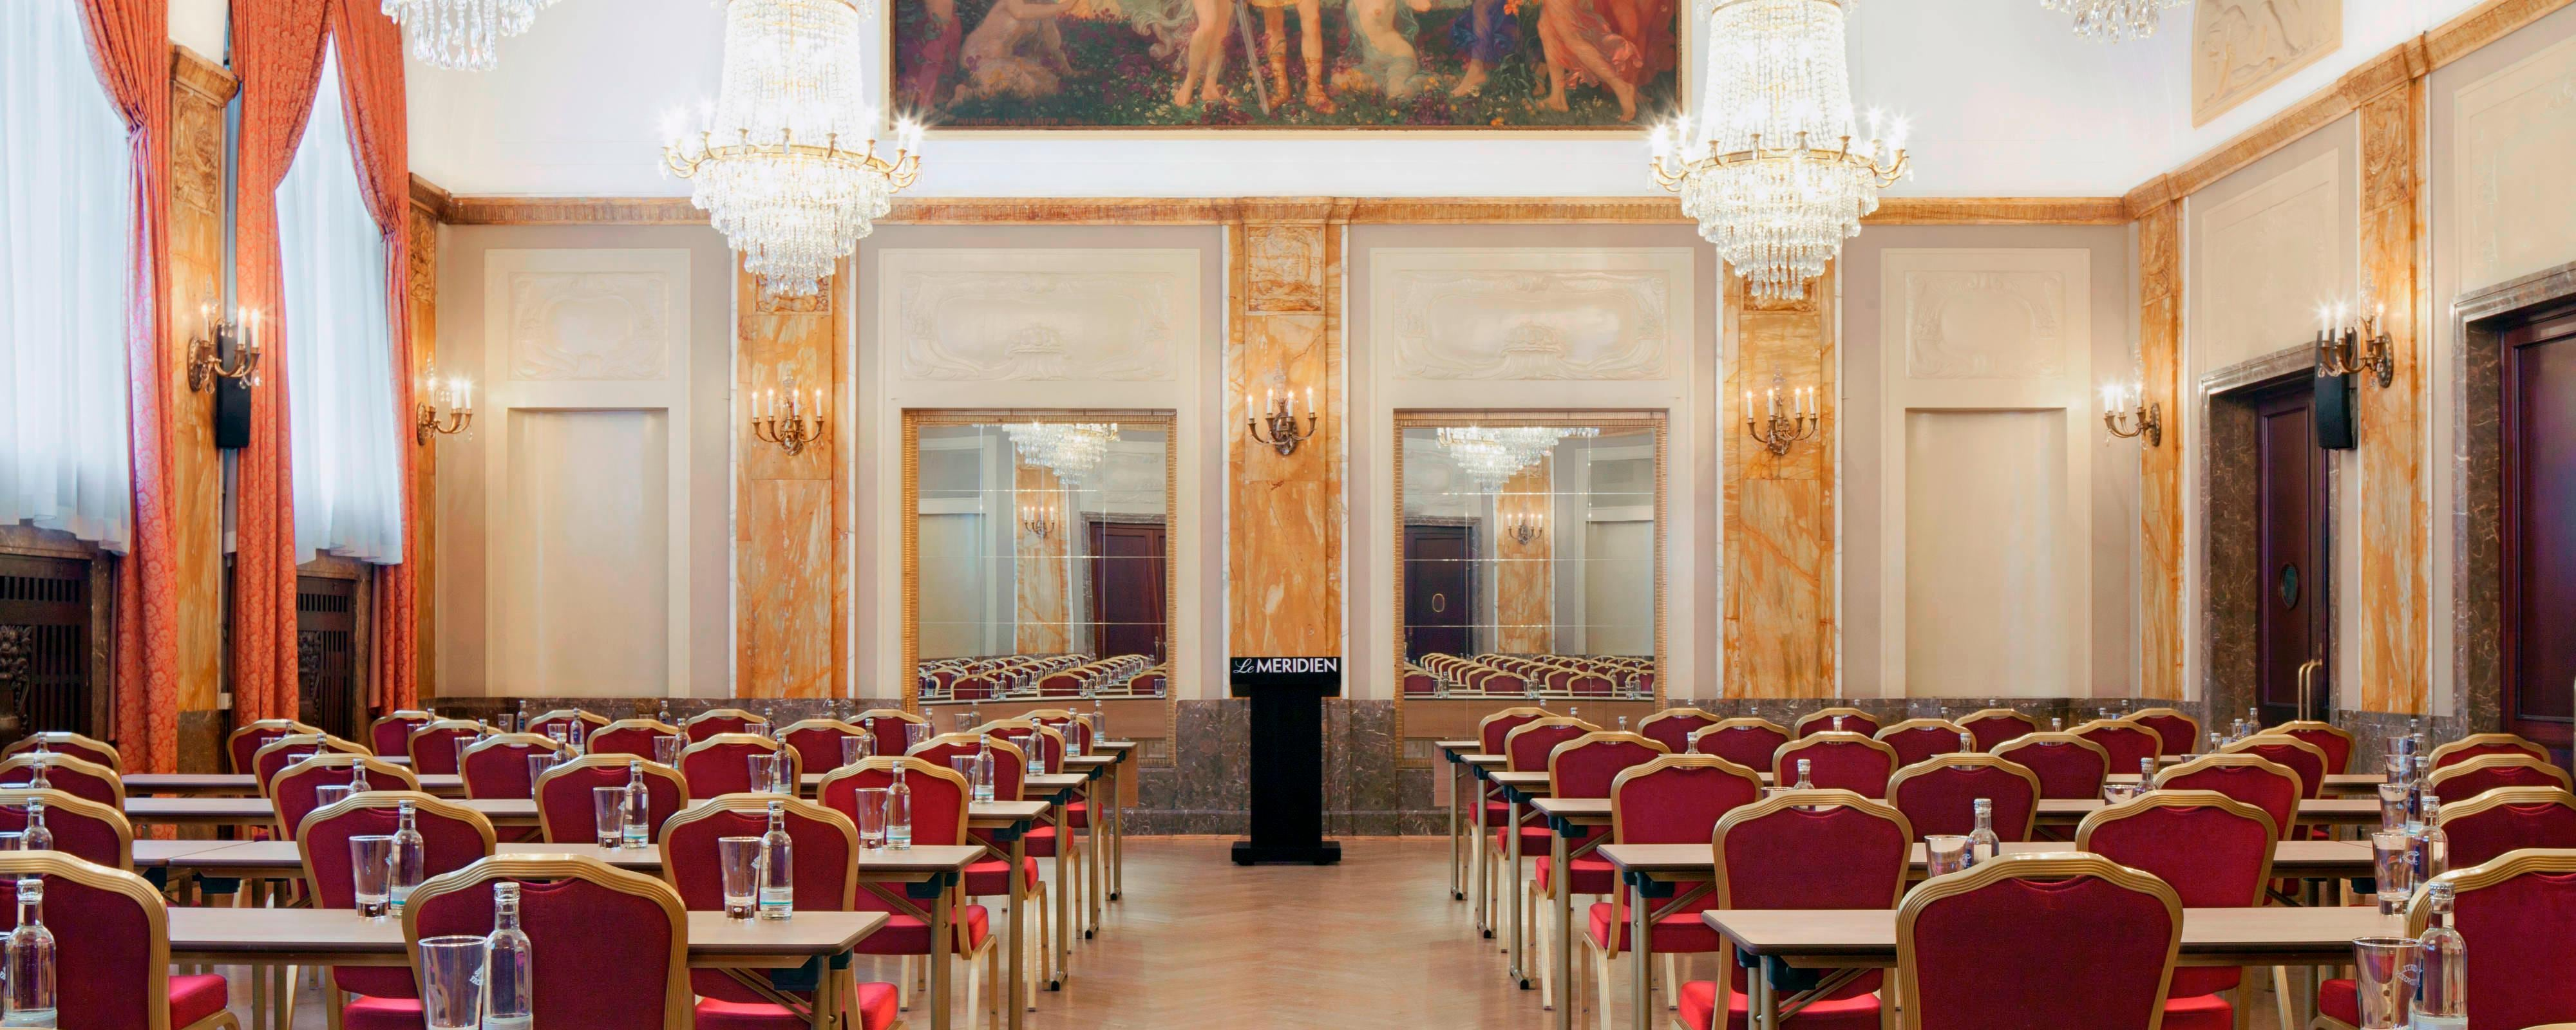 Richard - Wagner - Saal